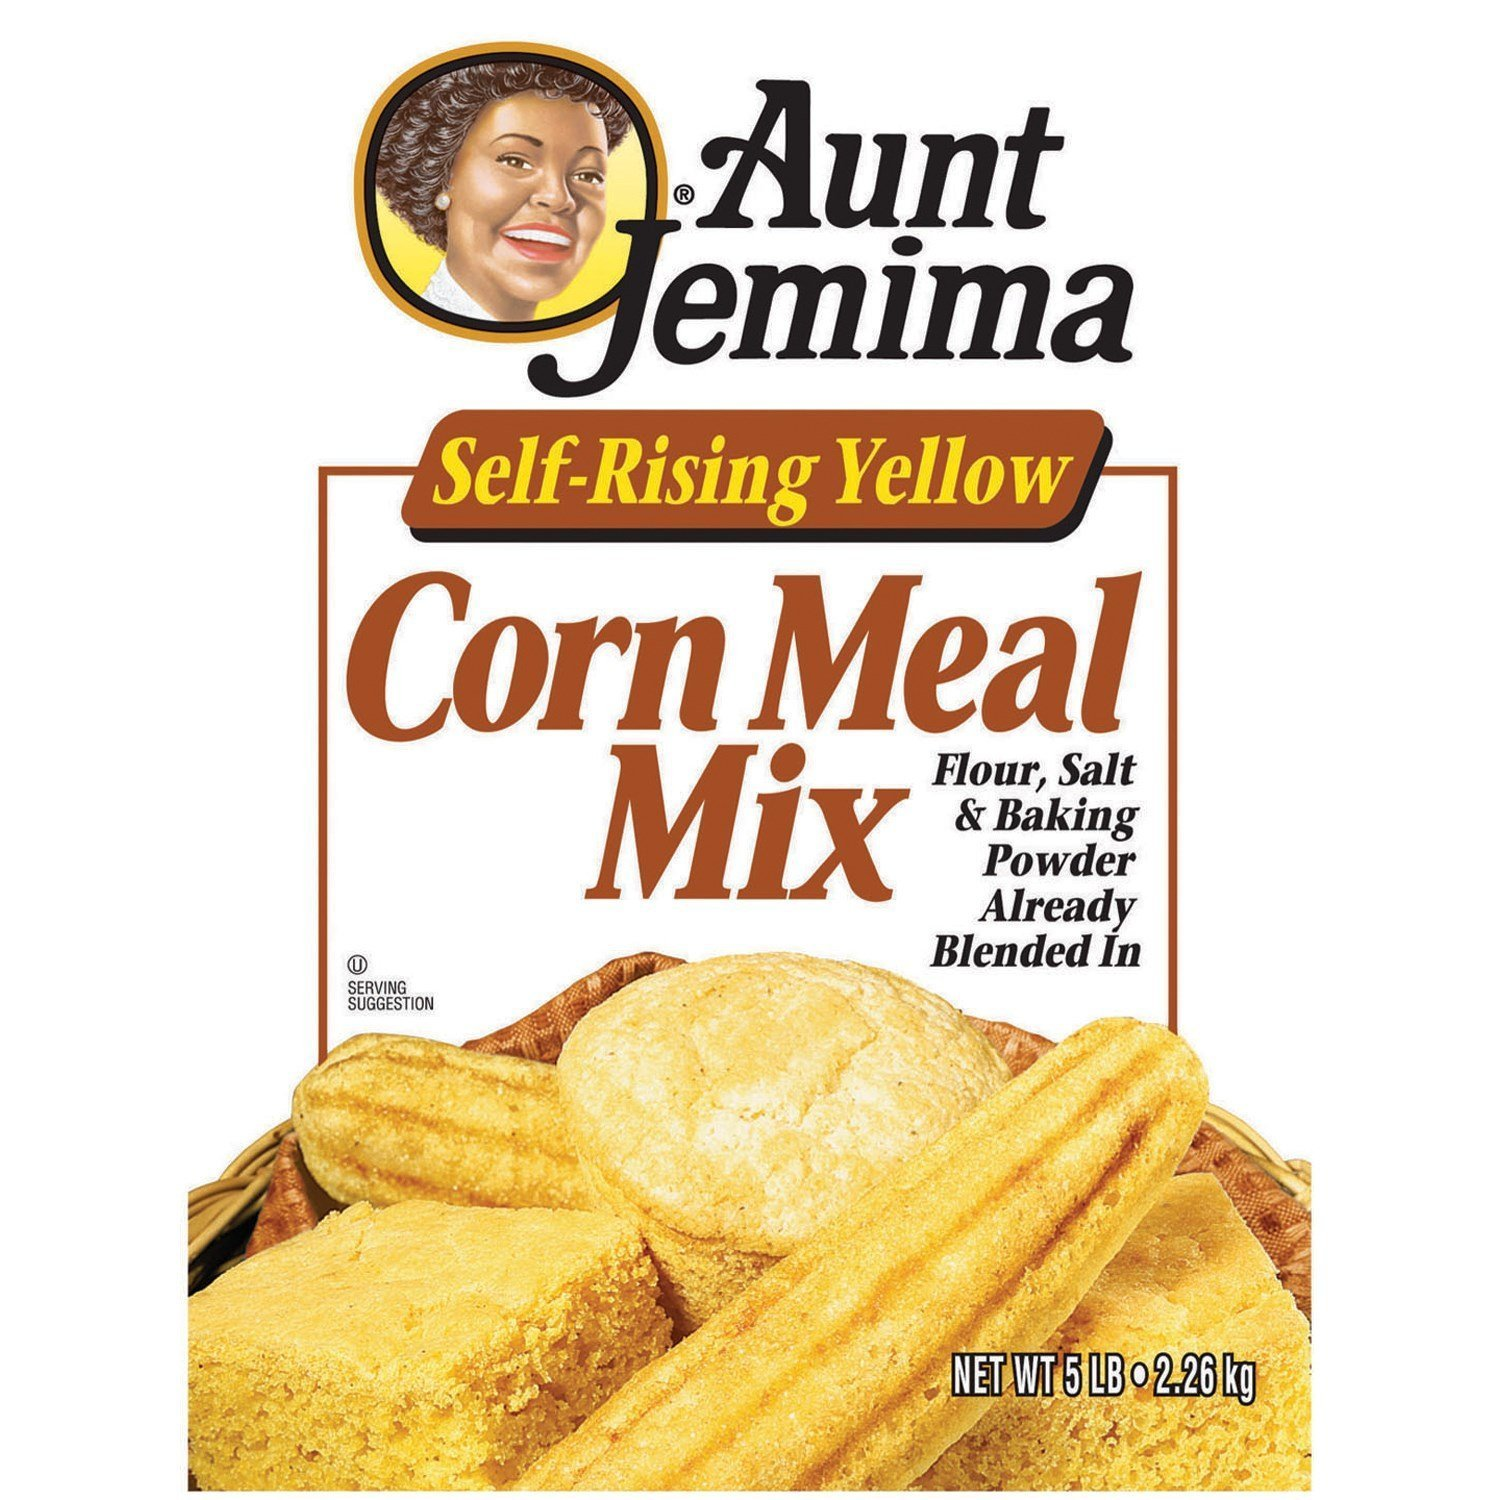 Aunt Jemima Self-Rising Yellow Corn Meal Mix 5 Lb (Pack of 2)